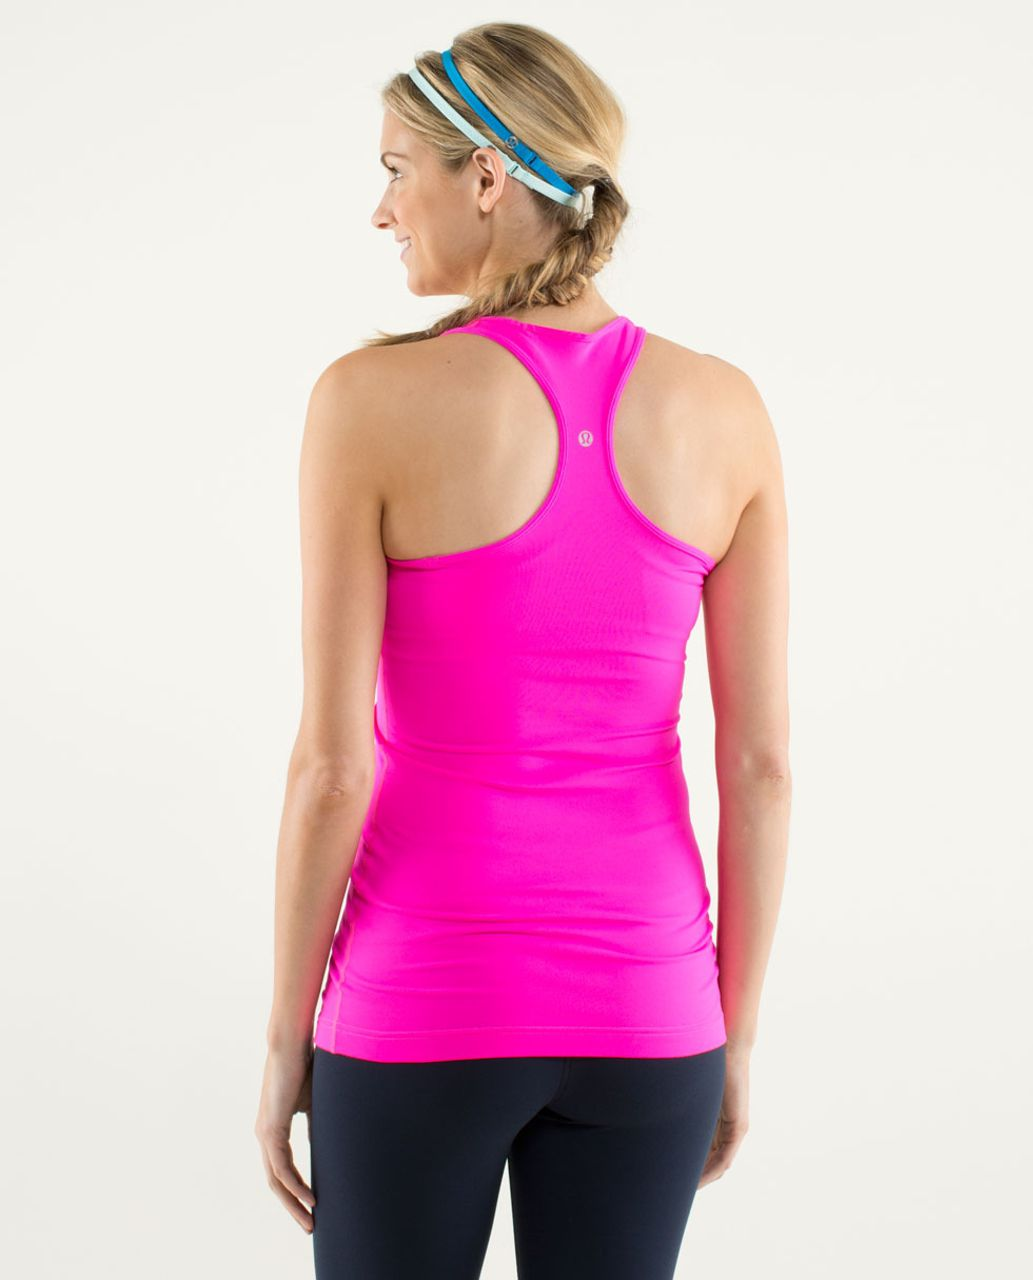 Lululemon Cool Racerback (Second Release) - Raspberry Glo Light